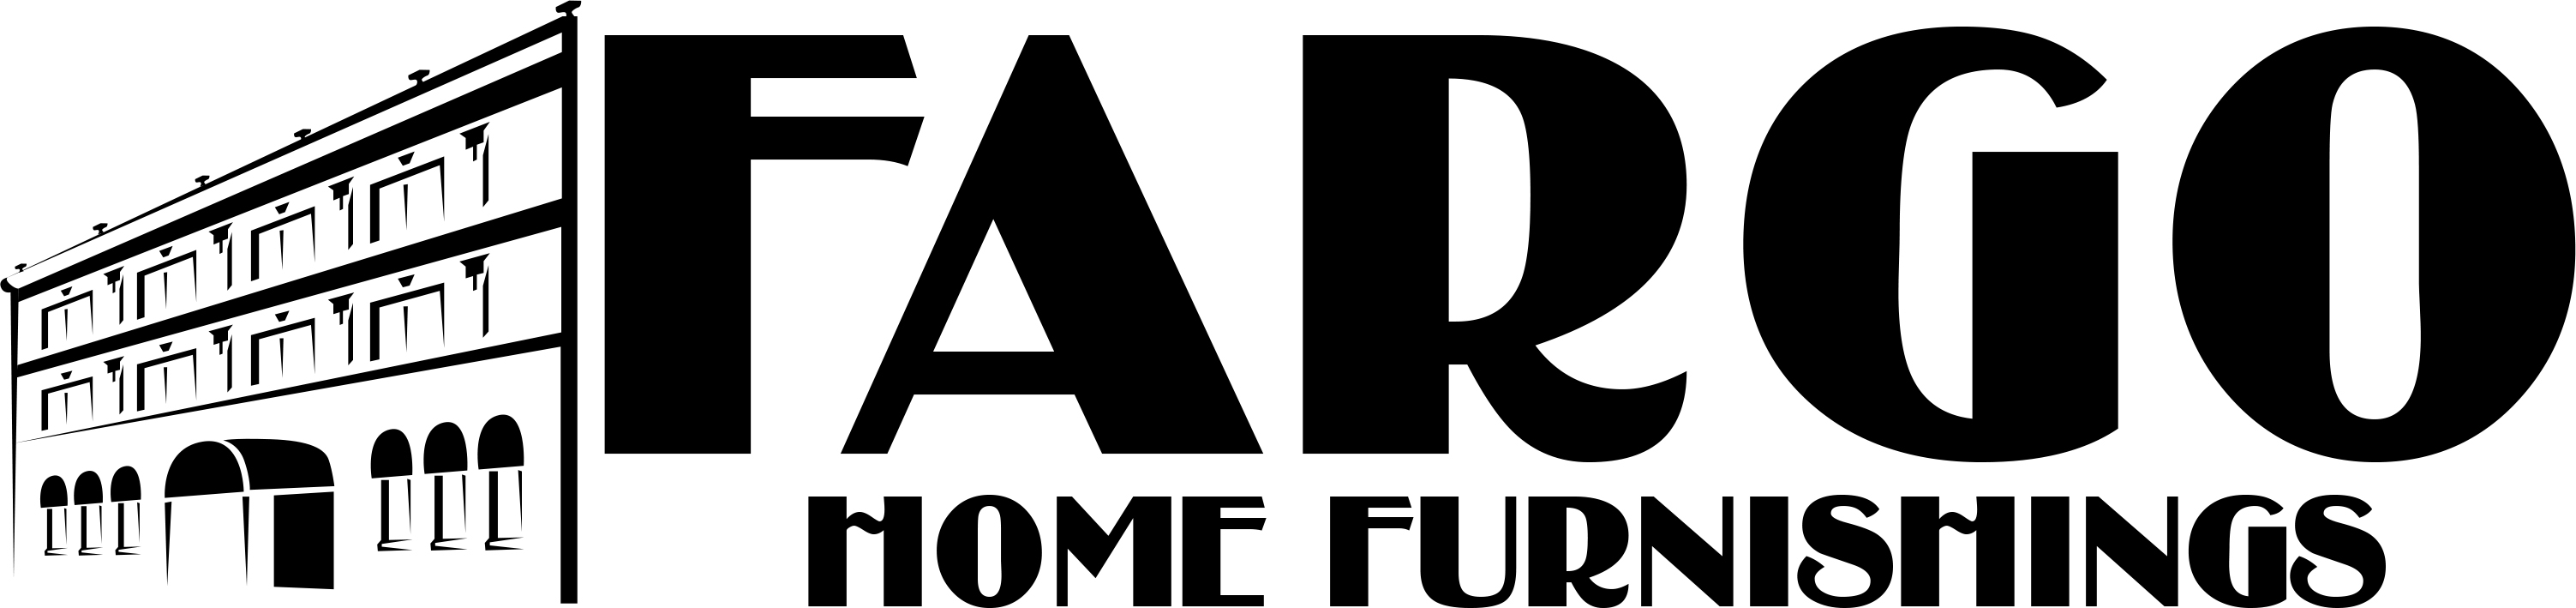 Fargo Home Furnishings